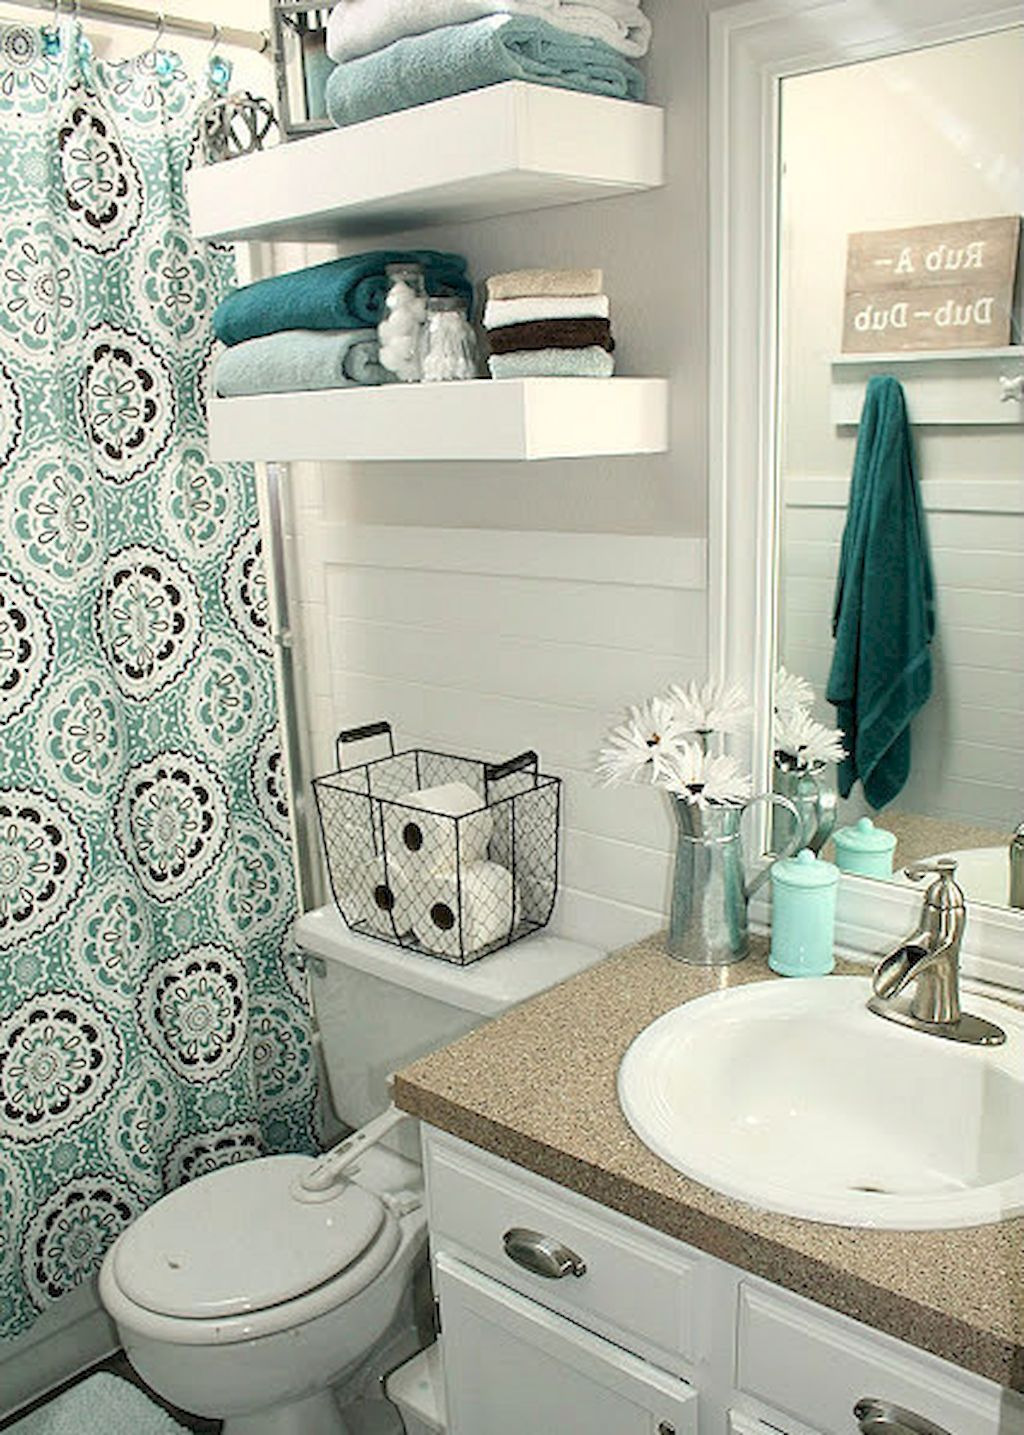 Decorating Ideas for Small Bathrooms In Apartments Fresh 30 Diy Small Apartment Decorating Ideas On A Bud